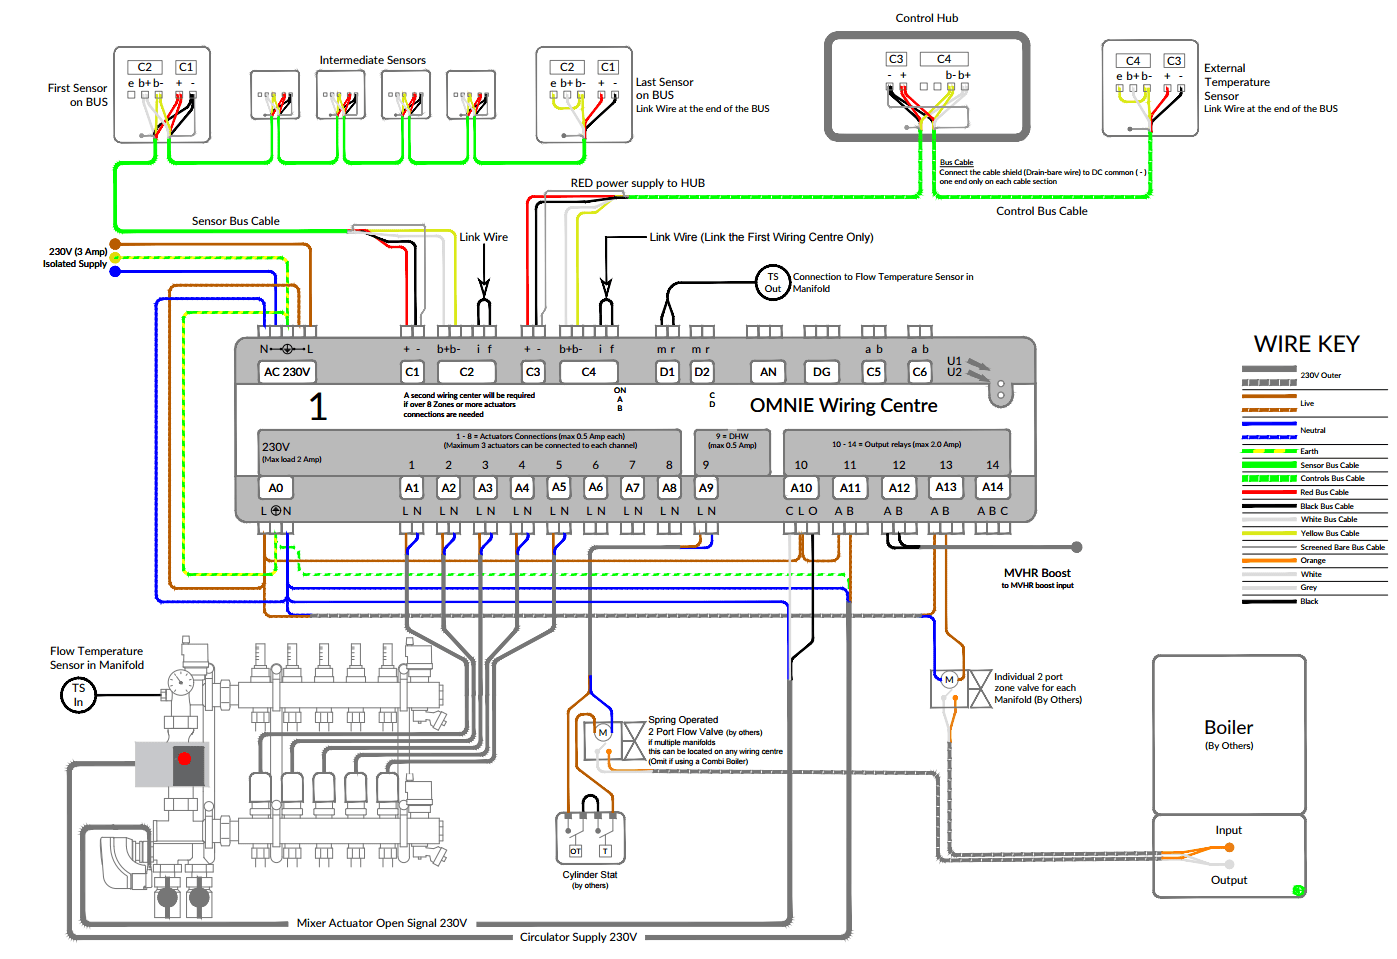 Radiant heat thermostat wiring diagram free download wiring diagram wiring diagram underfloor heating free download wiring diagram rh xwiaw us uponor wirsbo a3030101 uponor radiant thermostat cheapraybanclubmaster